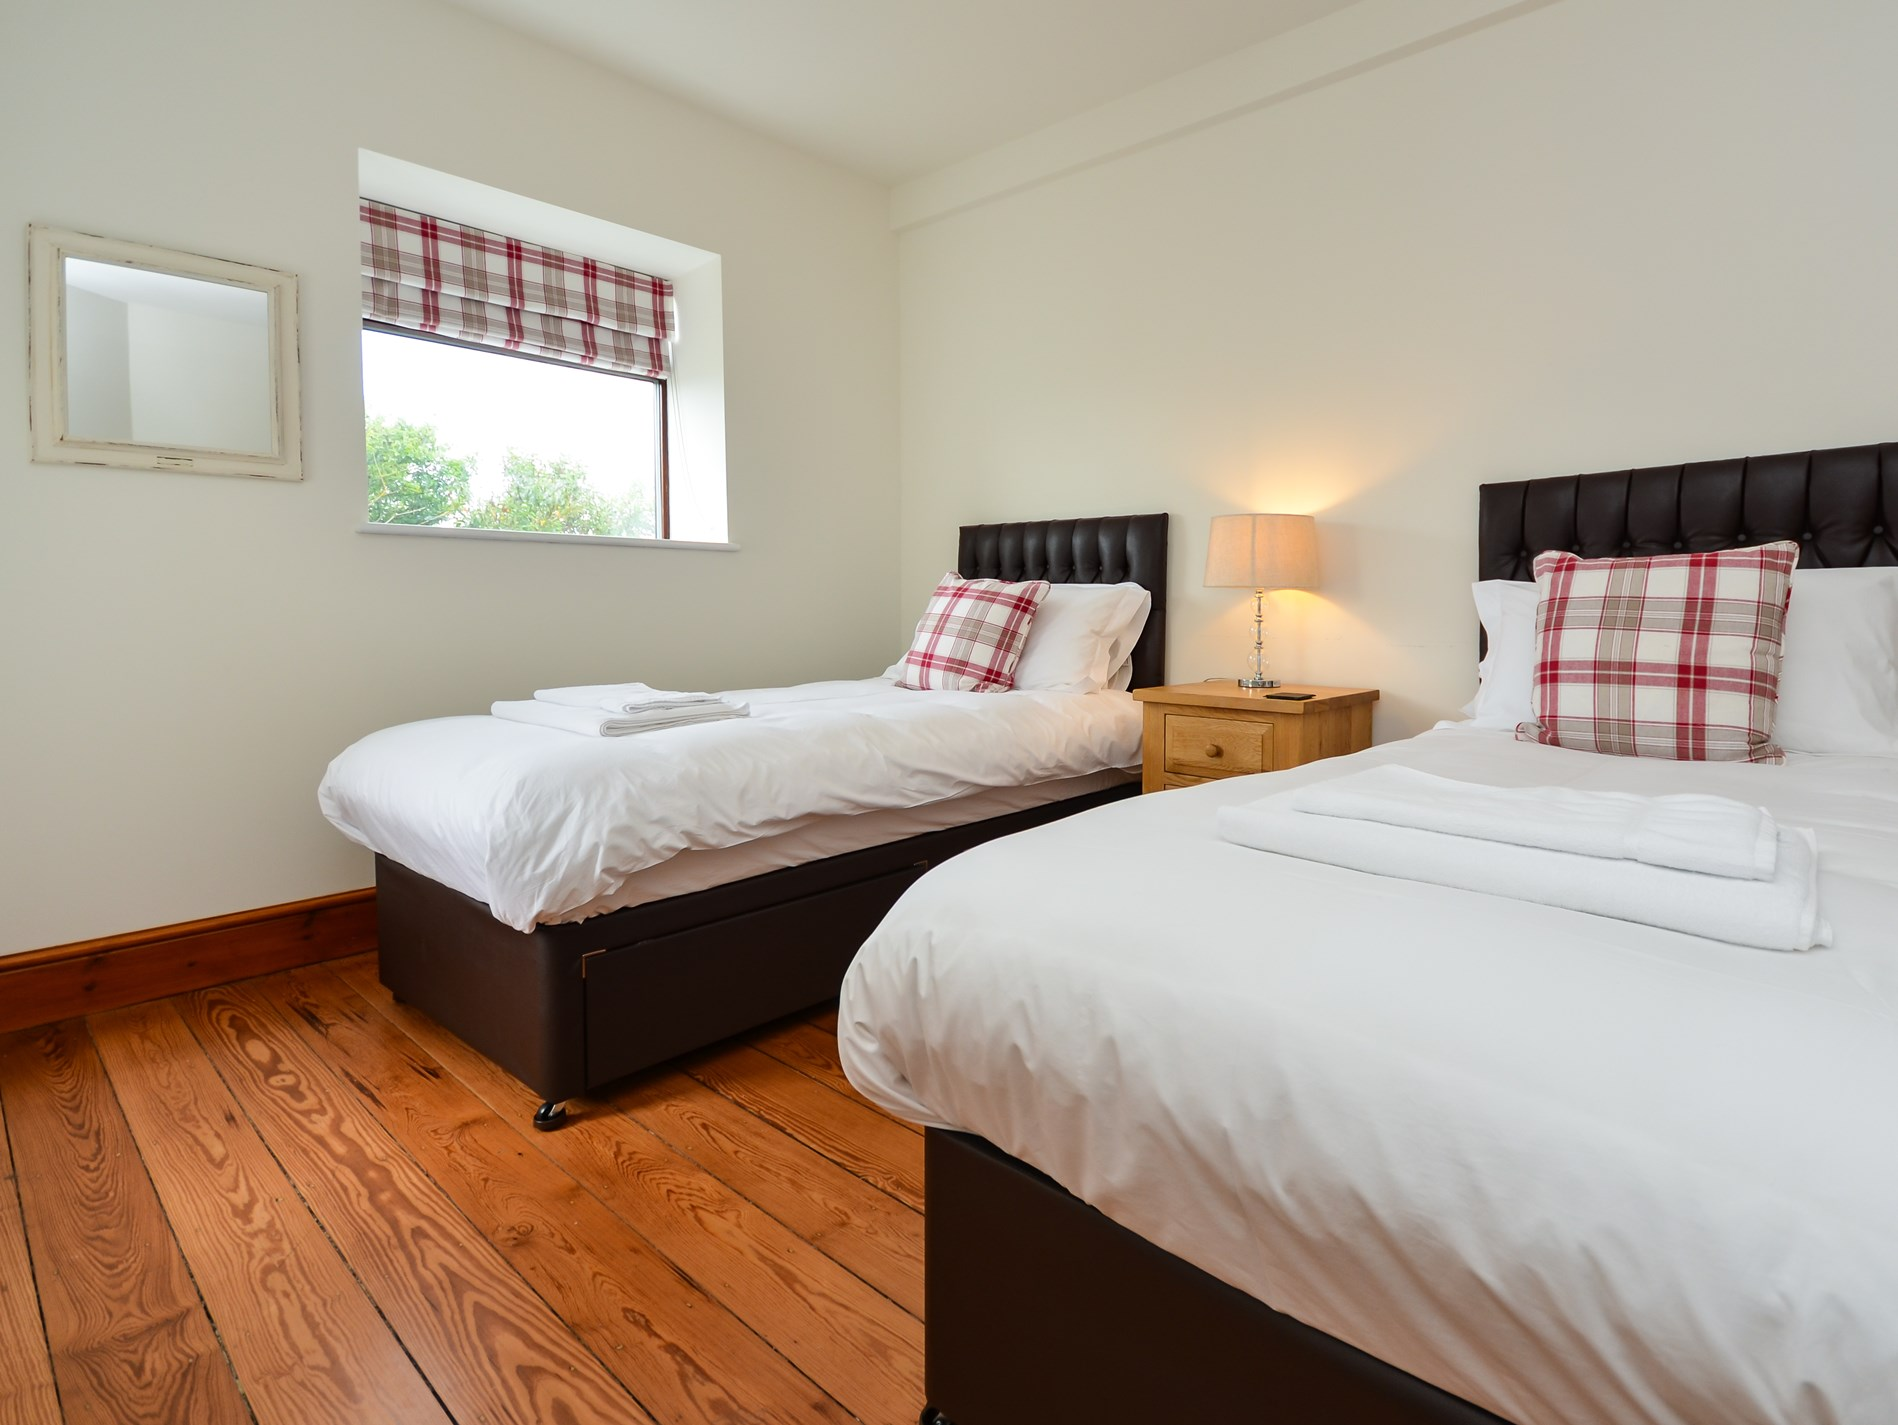 7 Bedroom Cottage in Holyhead, Snowdonia, North Wales and Cheshire